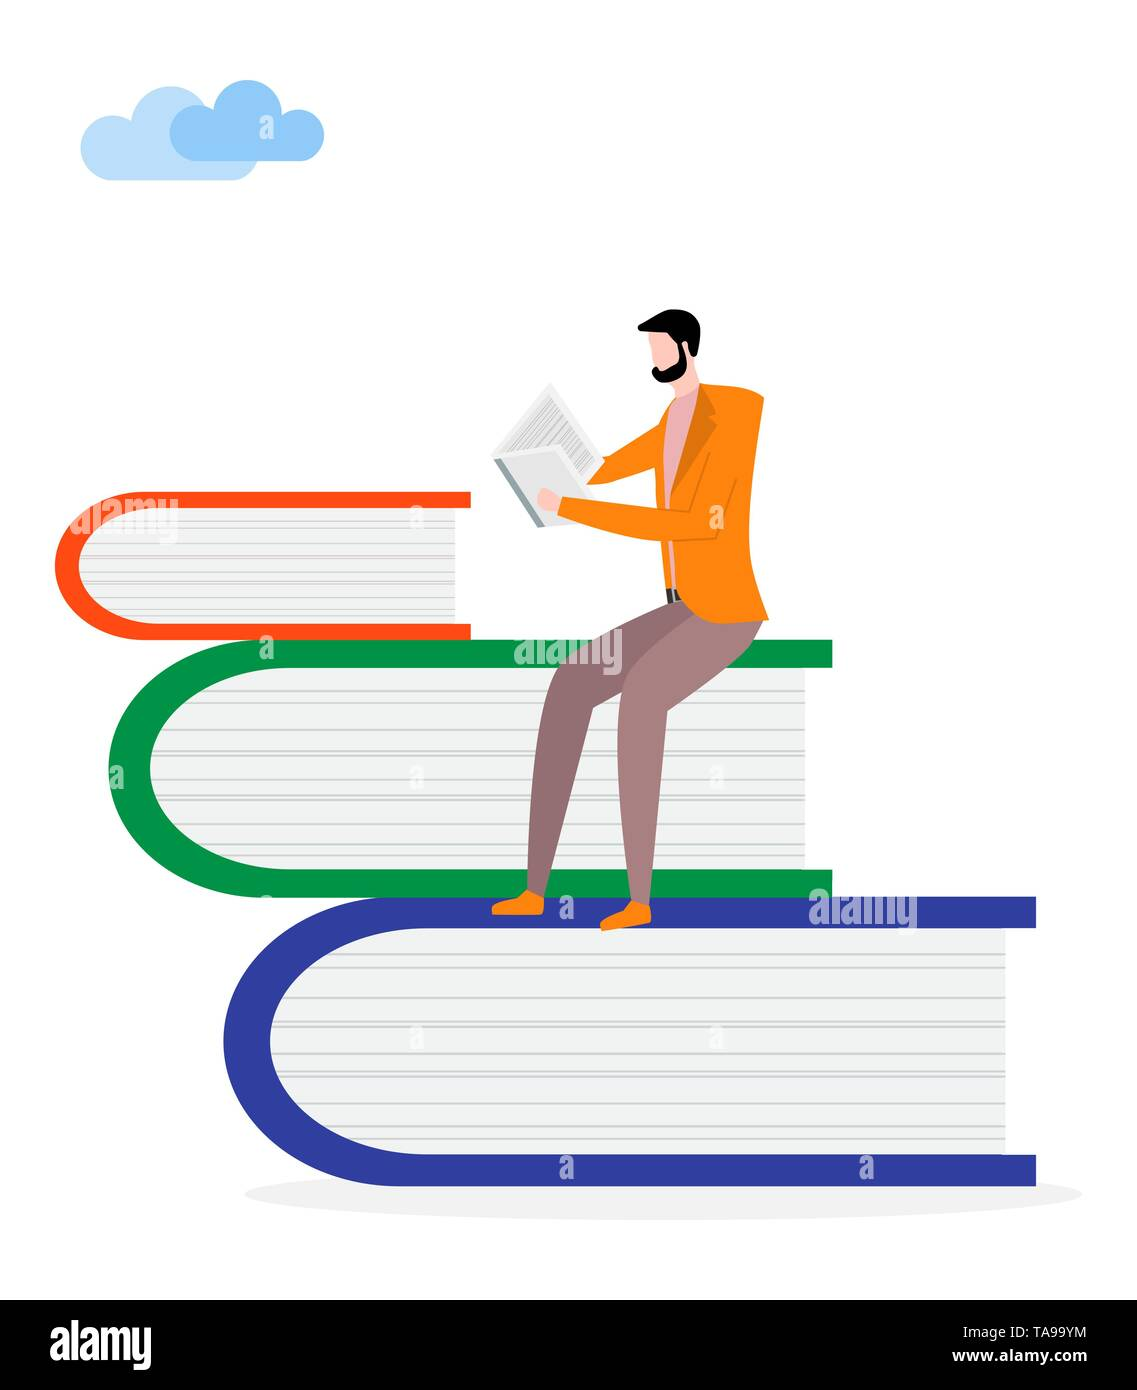 Vector illustration with man and books. Male reader, stack of giant books. Literature fans. Design for websites, print, presentation. Stock Vector